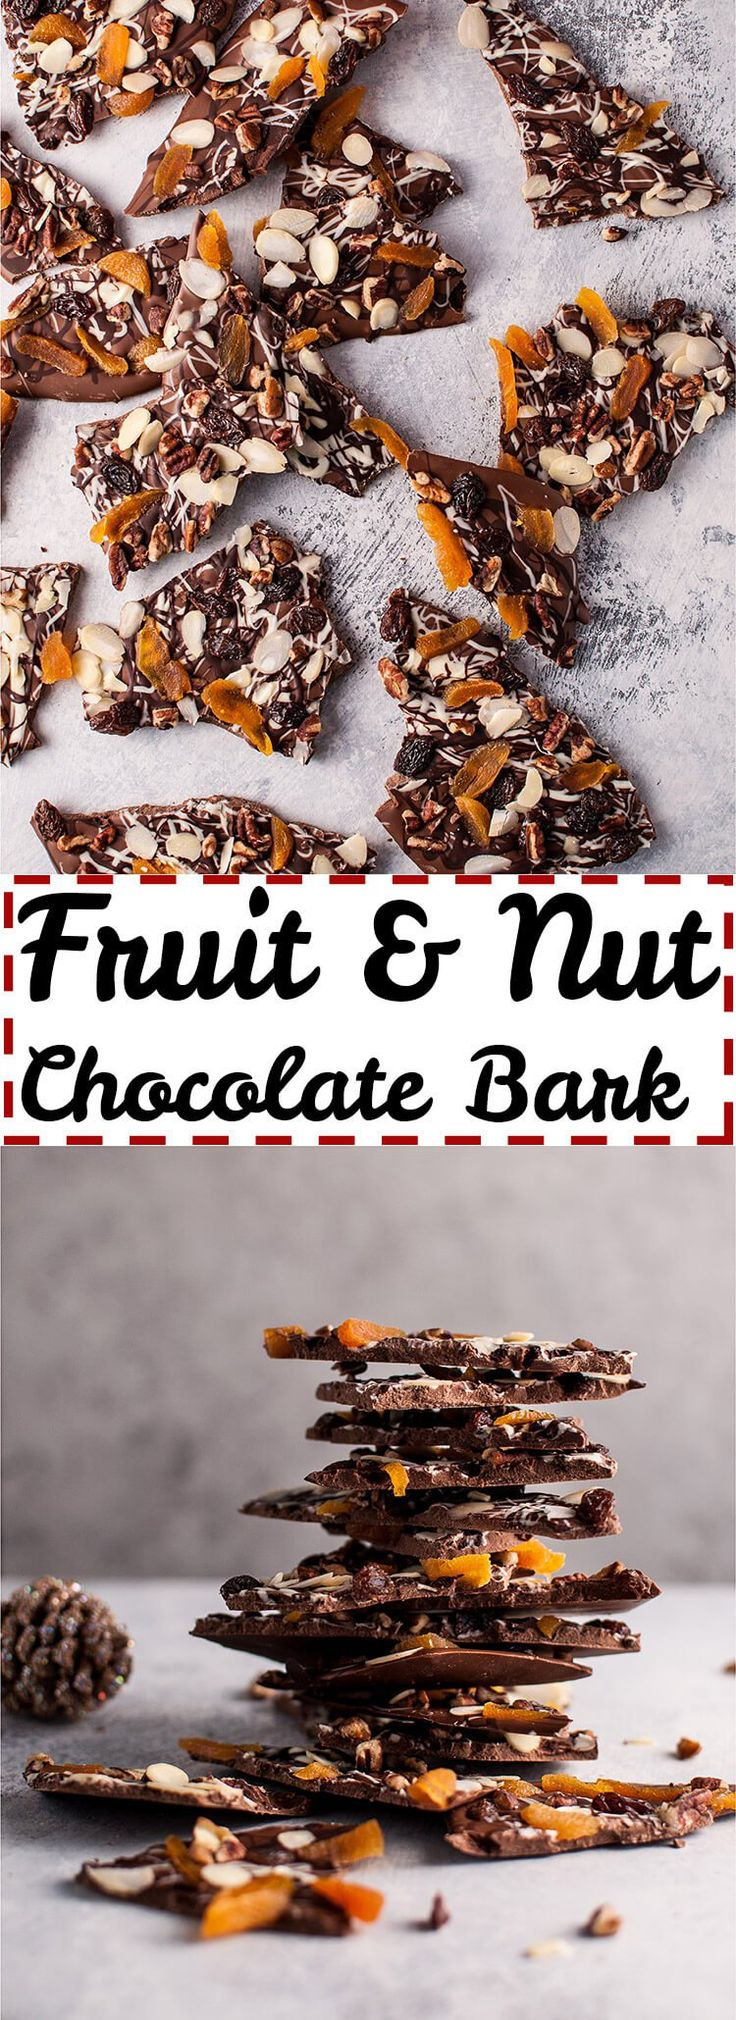 This fruit and nut chocolate bark is easy, delicious, and makes a perfect festive Christmas treat or homemade gift.